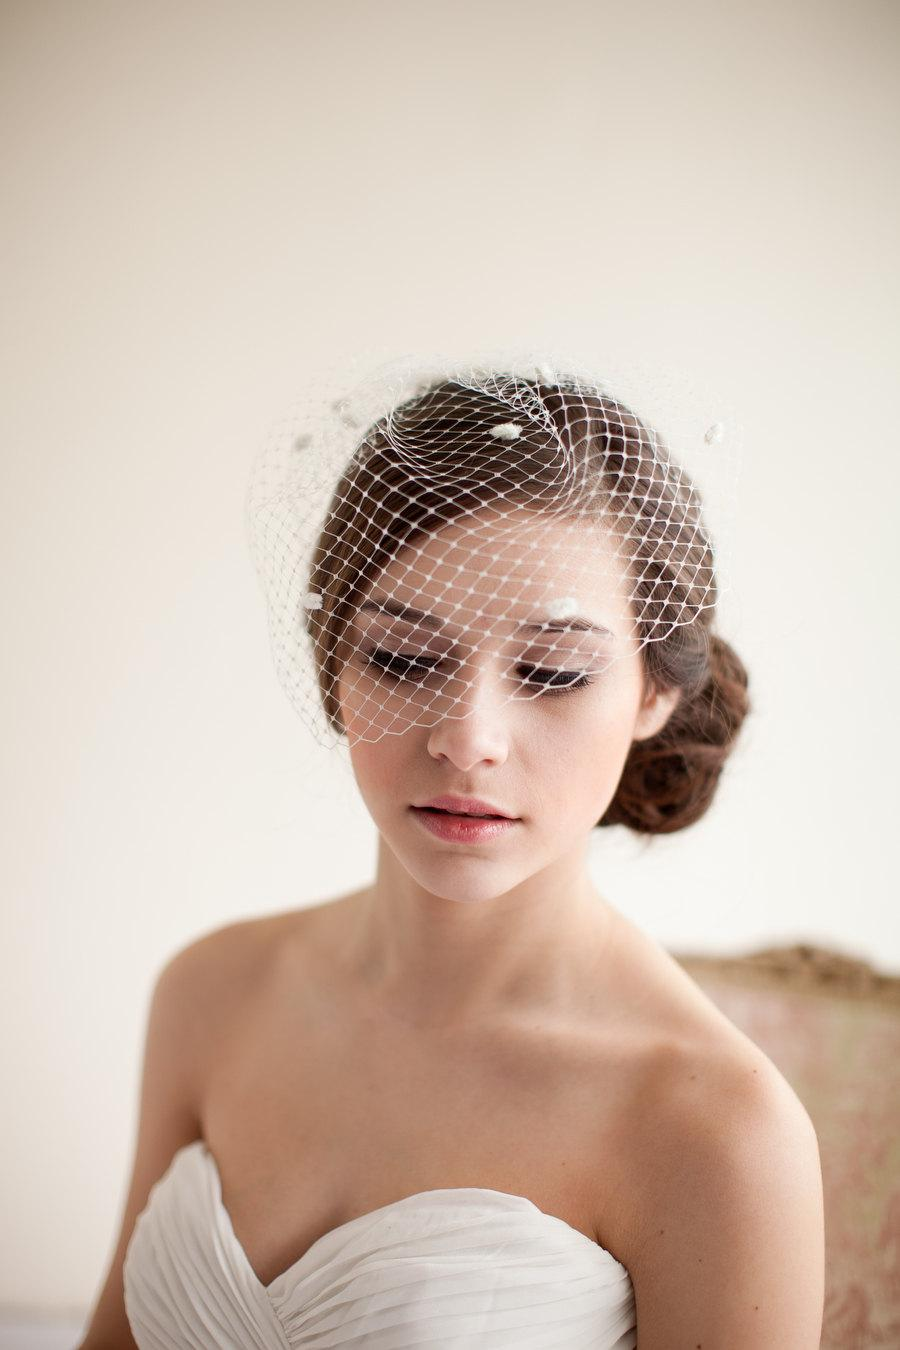 Mariage - Birdcage Veil, Dotted Birdcage Veil, Blusher Veil, Mini Birdcage Veil, Wedding Veil, Polka Dot Veil - Marilyn  MADE TO ORDER